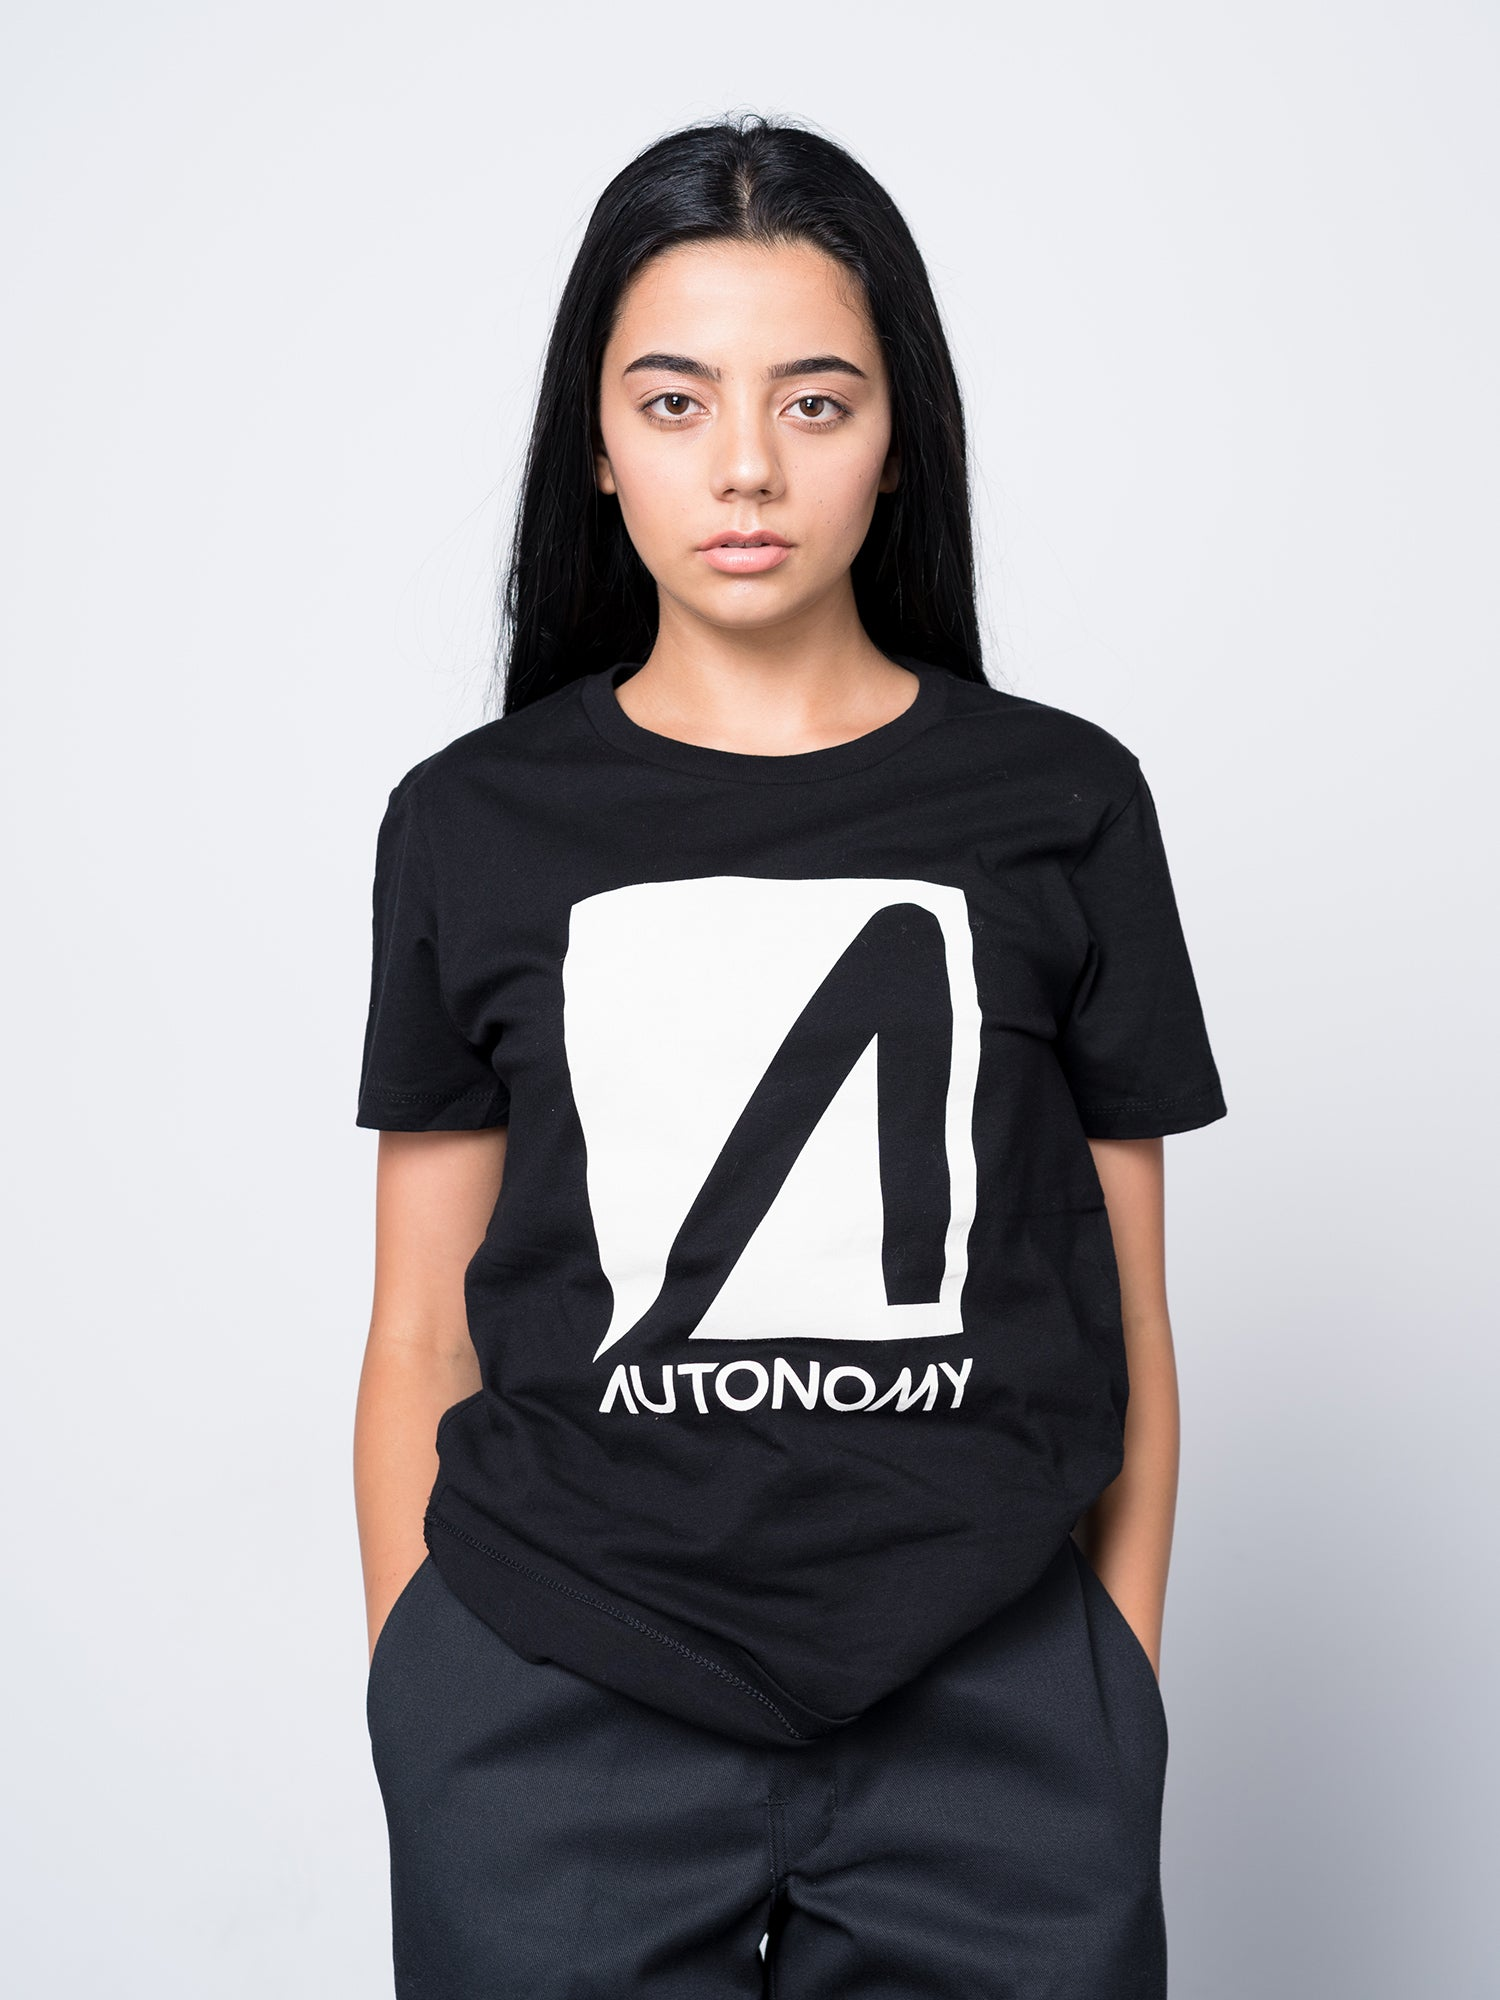 Autonomy No Comply T-shirt - Black